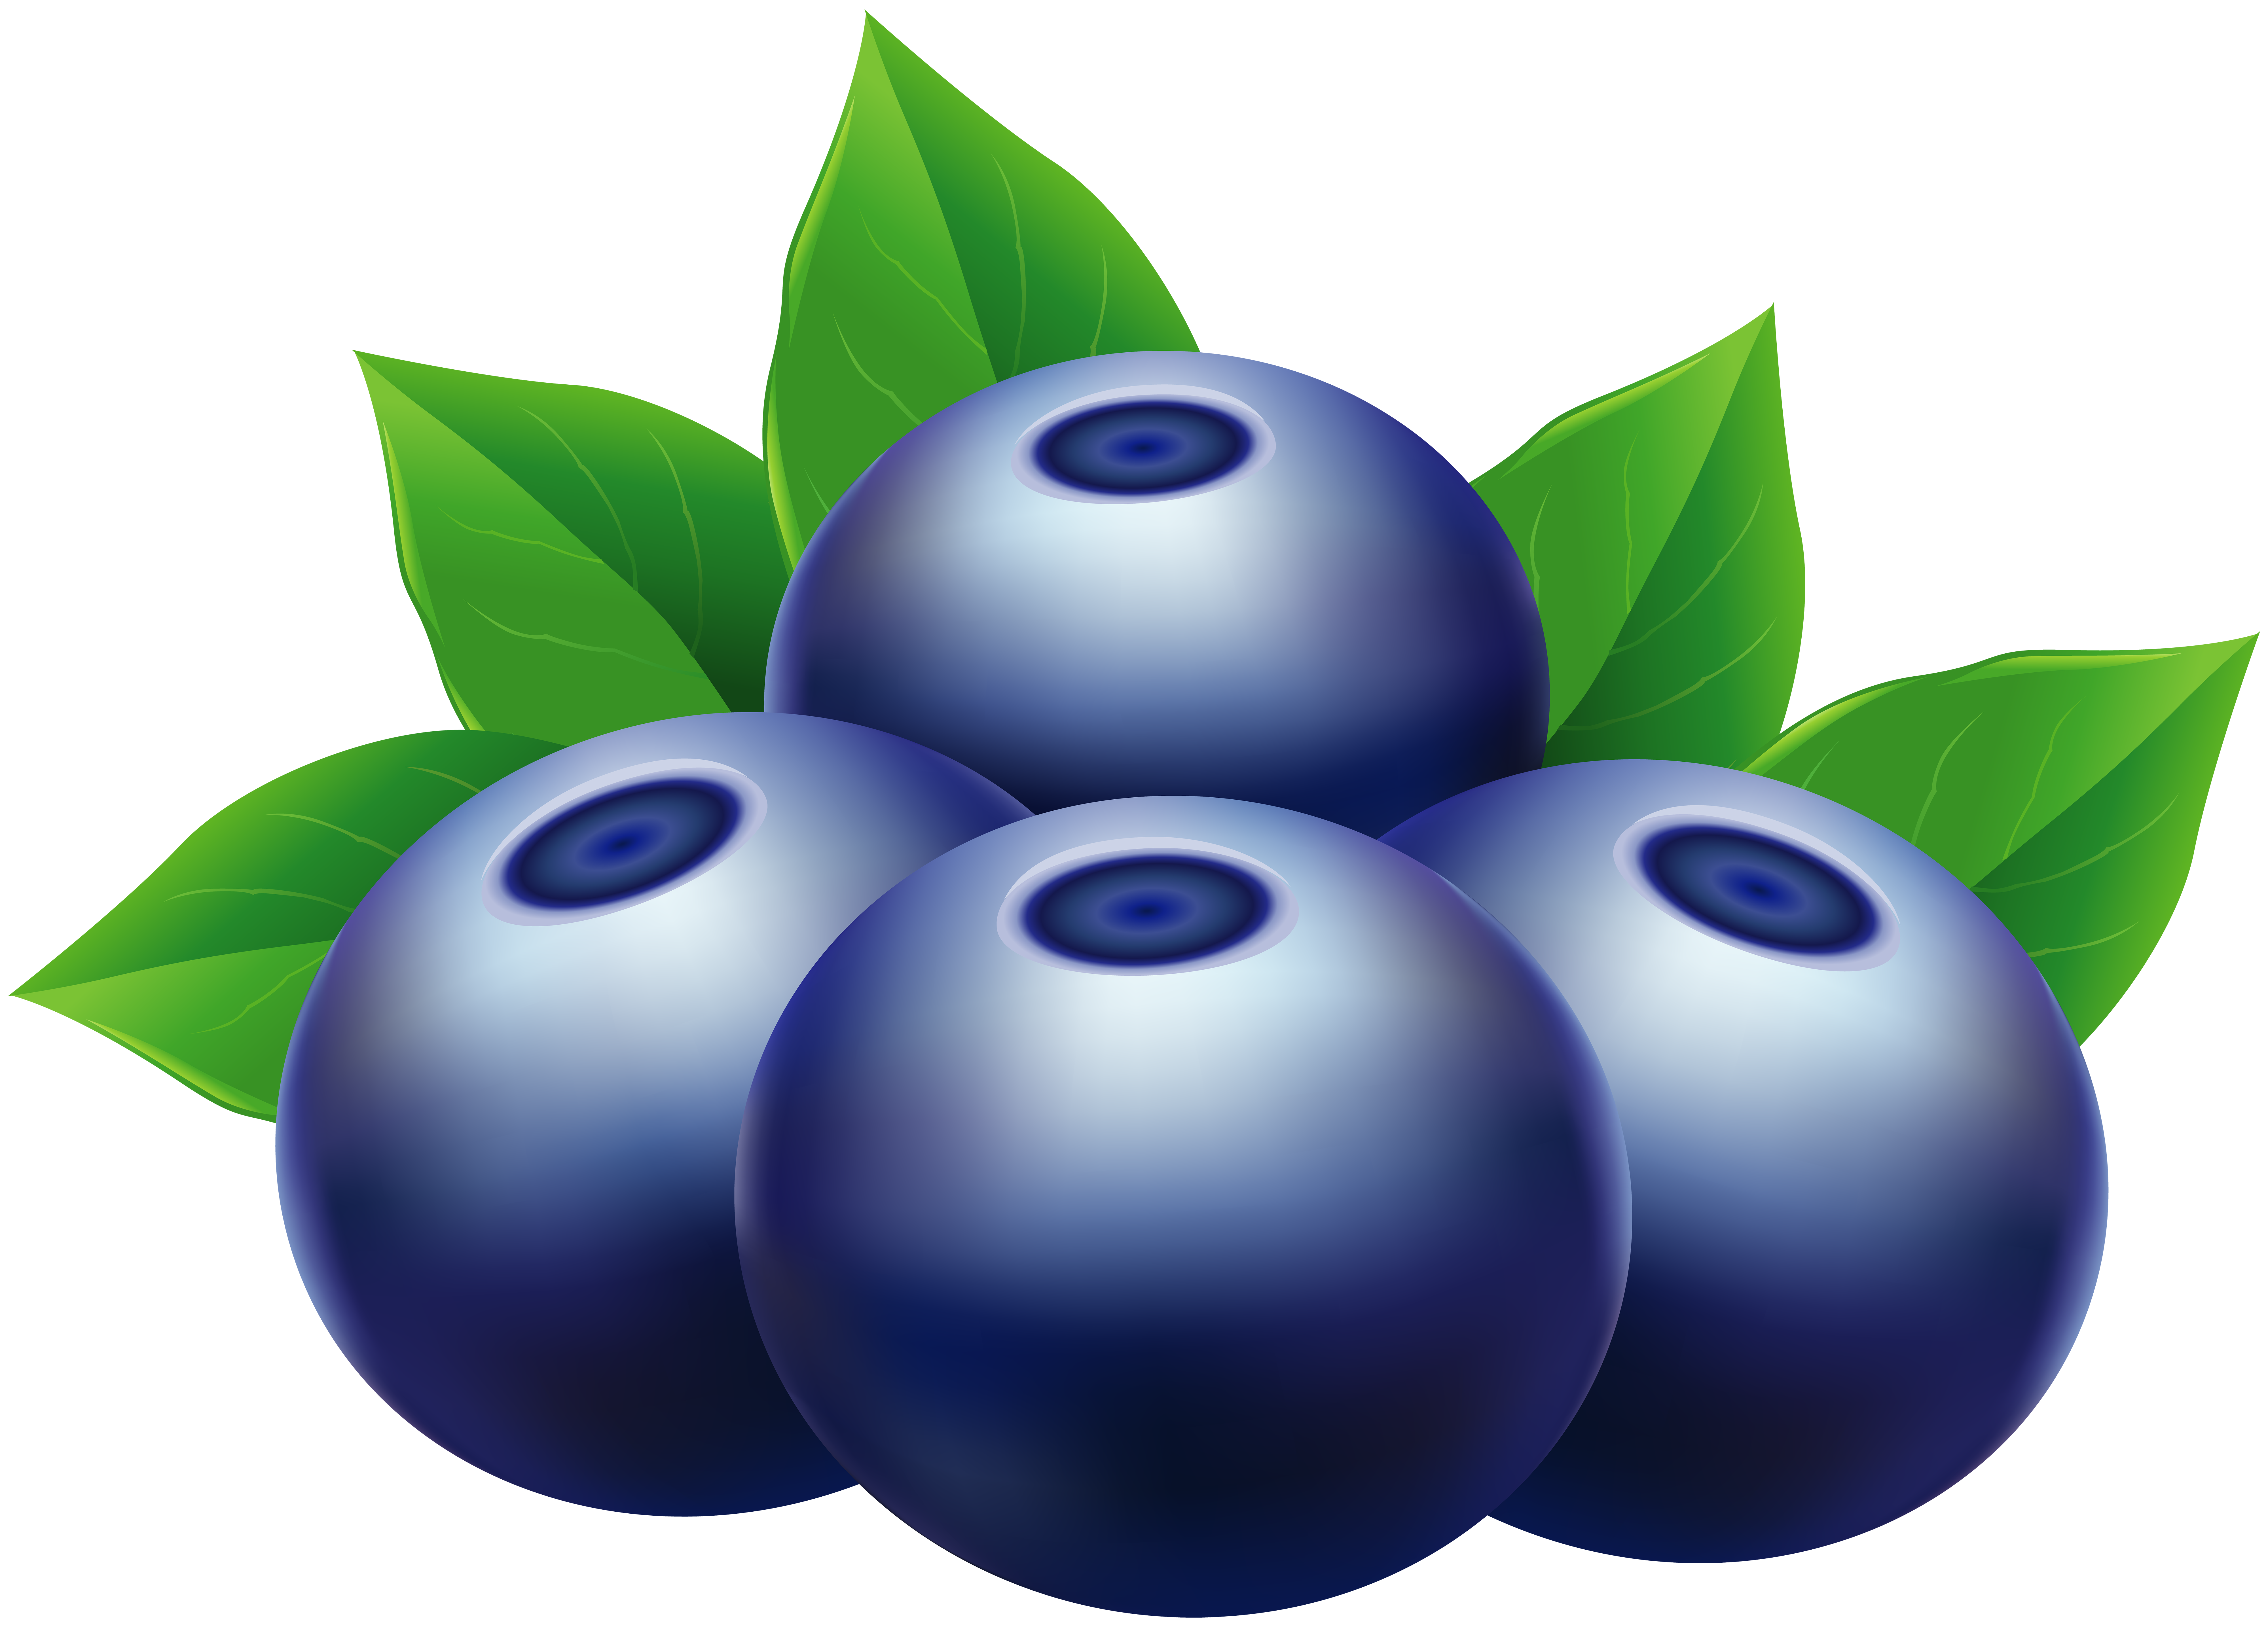 Blueberry clipart huckleberry. Blueberries png clip art